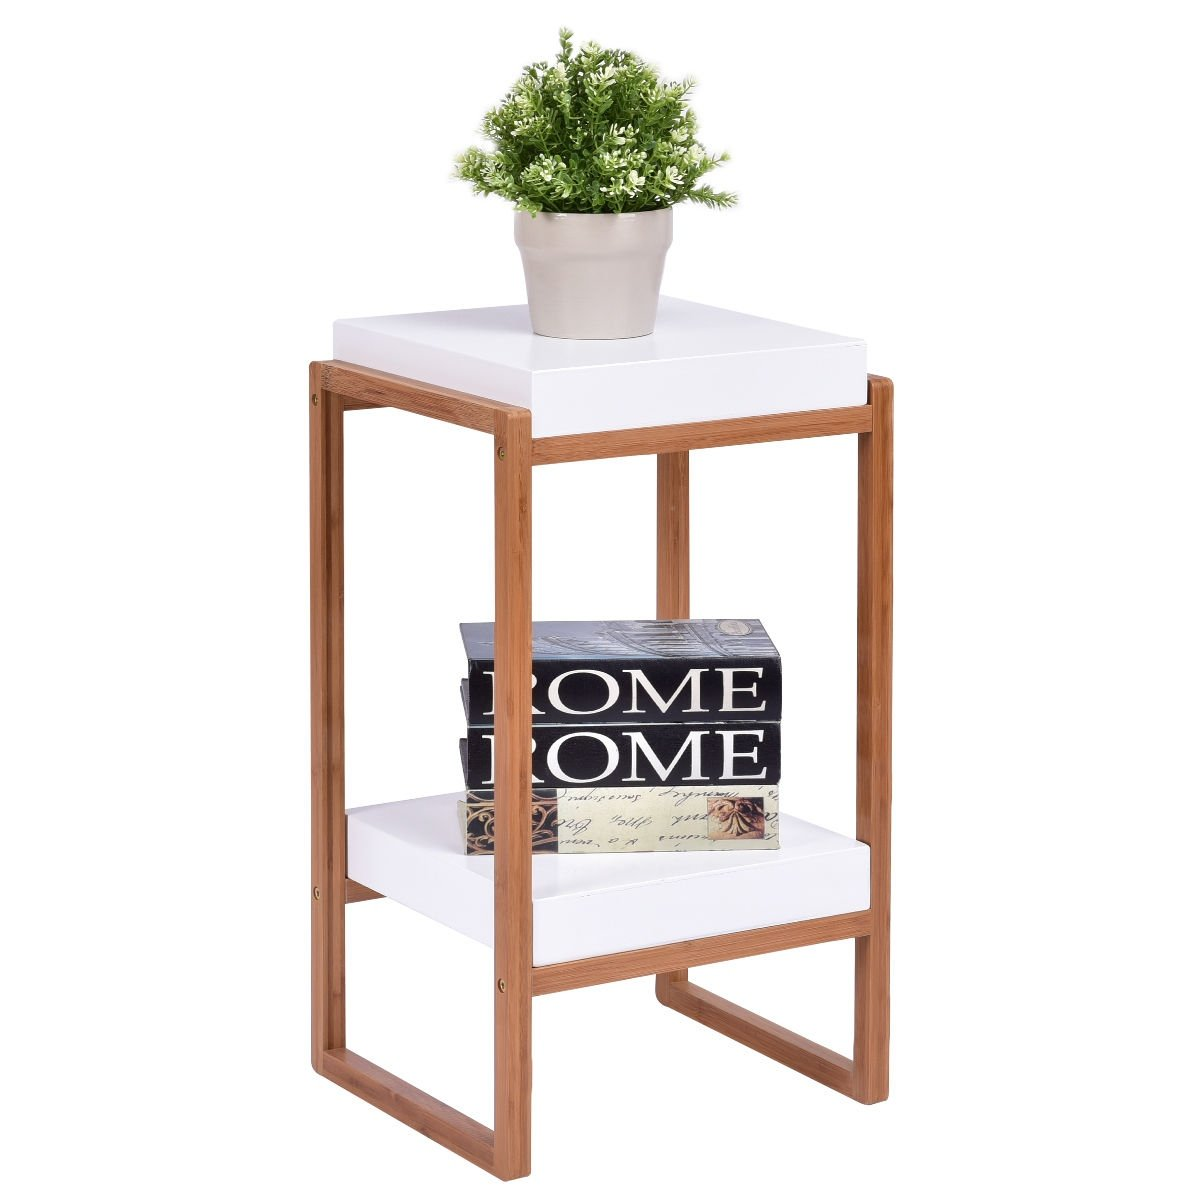 gymax side end table accent storage night stand display shelf white target fretwork dining chairs meyda lamps west elm replacement lamp shades small round metal outdoor garden